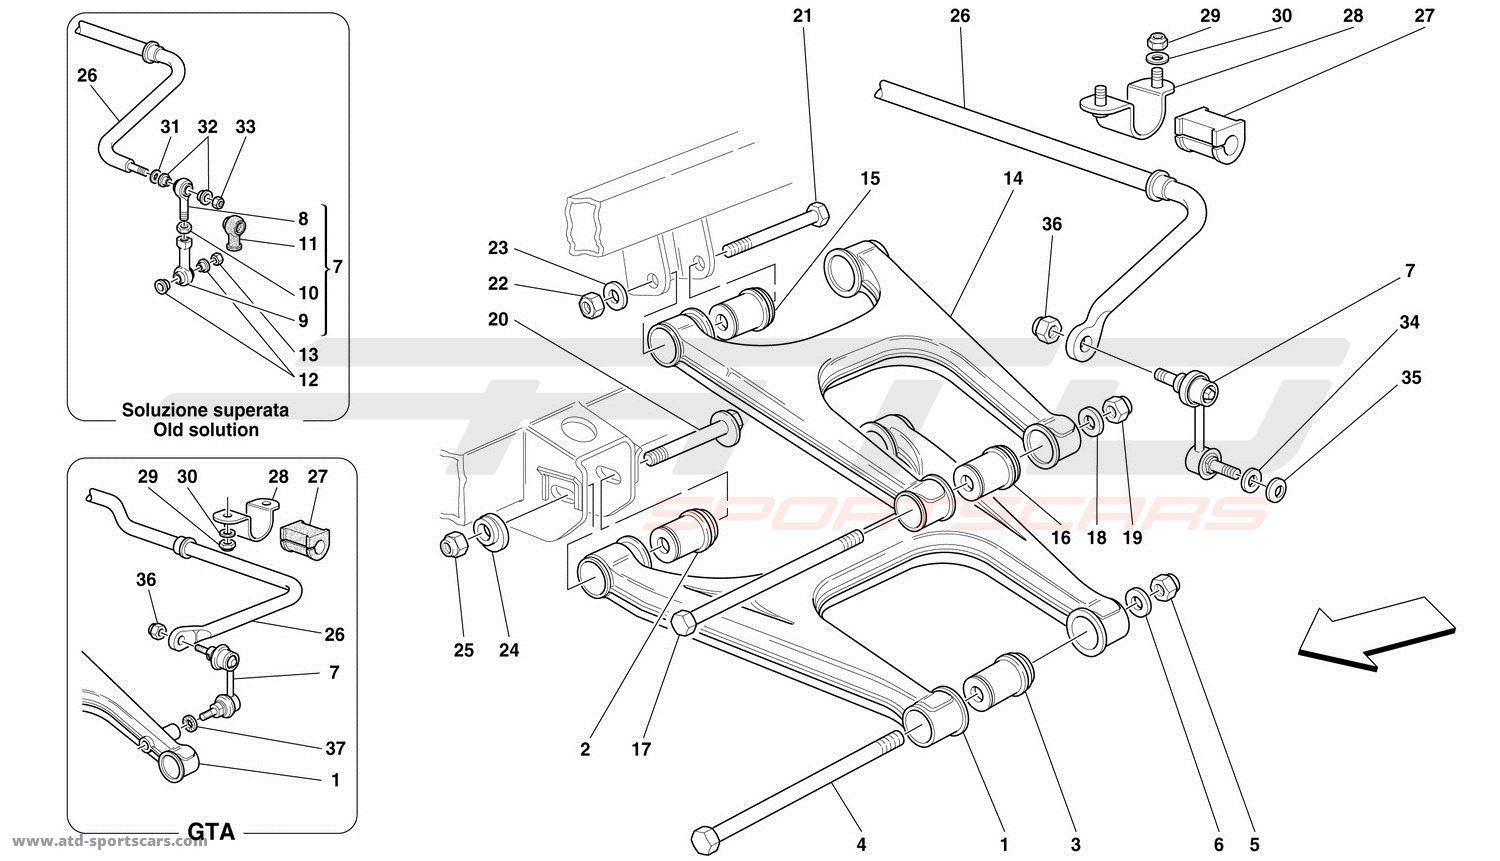 REAR SUSPENSION - WISHBONES AND STABILIZER BAR